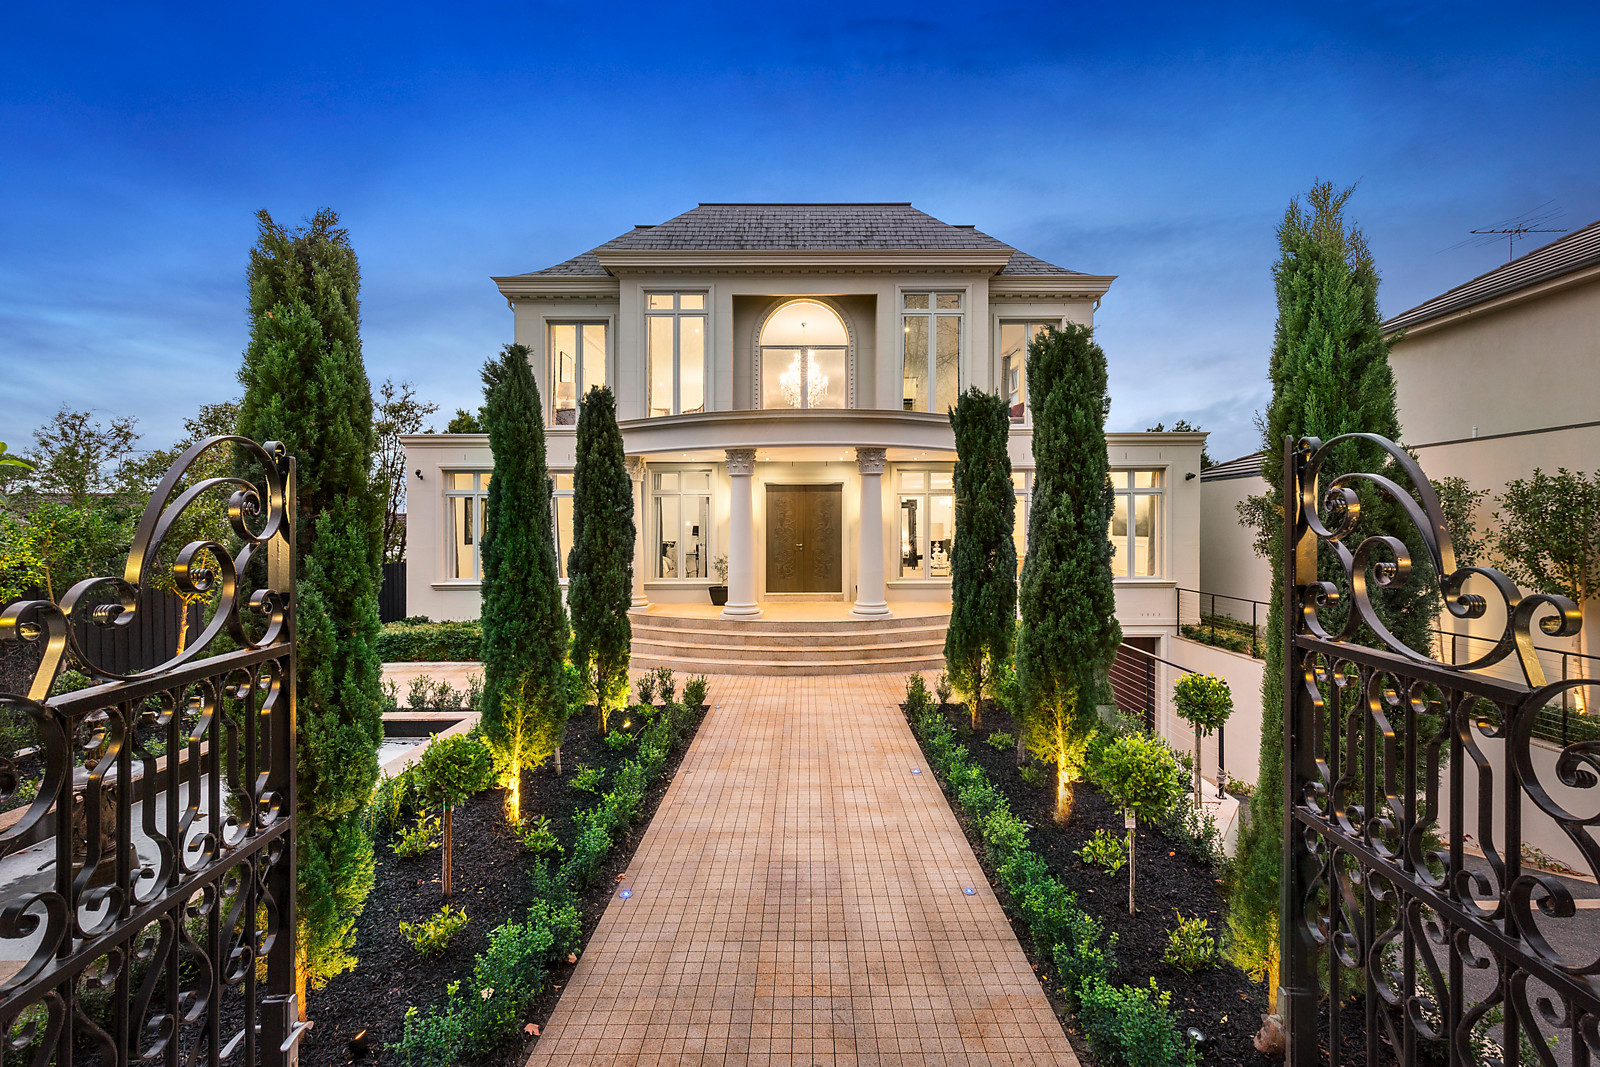 Howtosellluxuryhomes_KewMansion